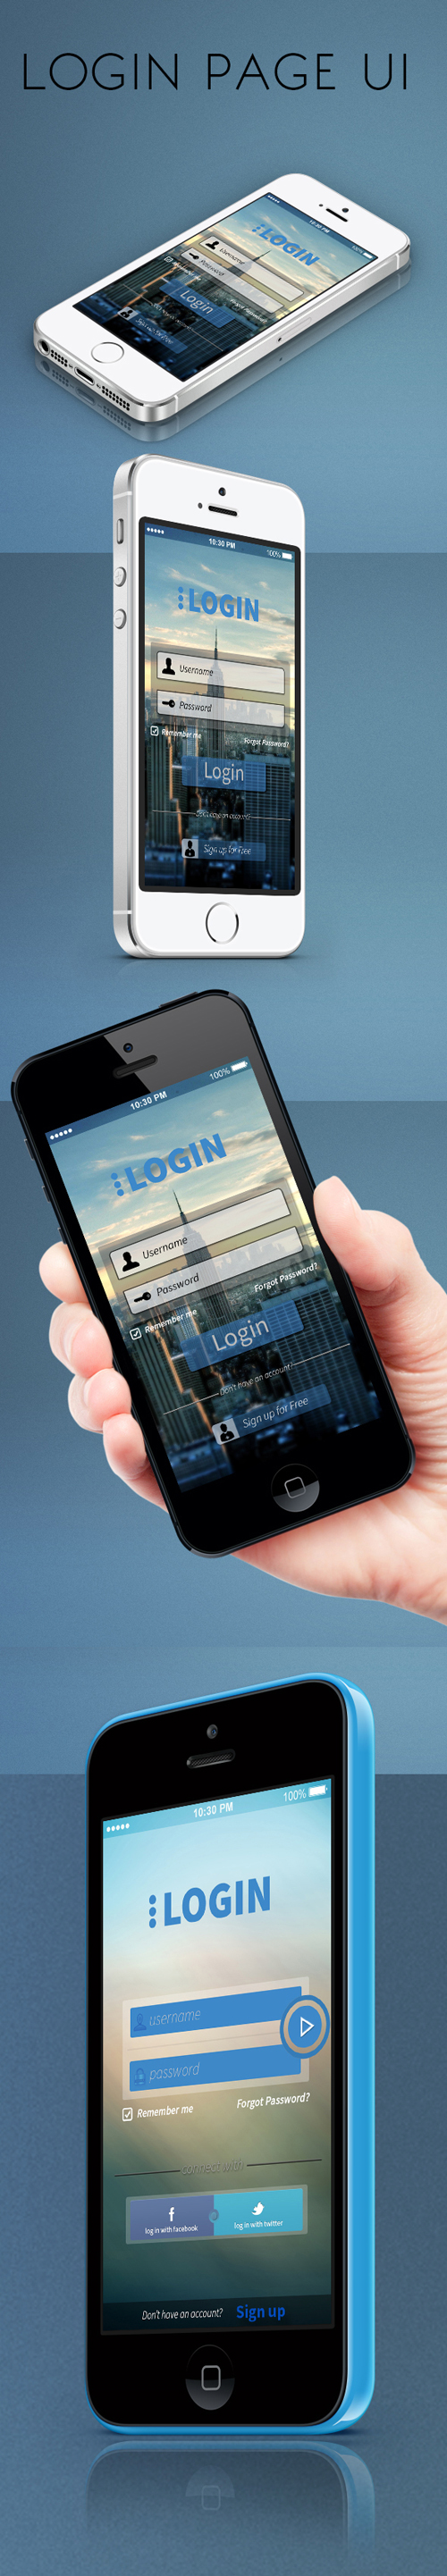 Amazing Mobile App UI Designs with Ultimate User Experience - 2